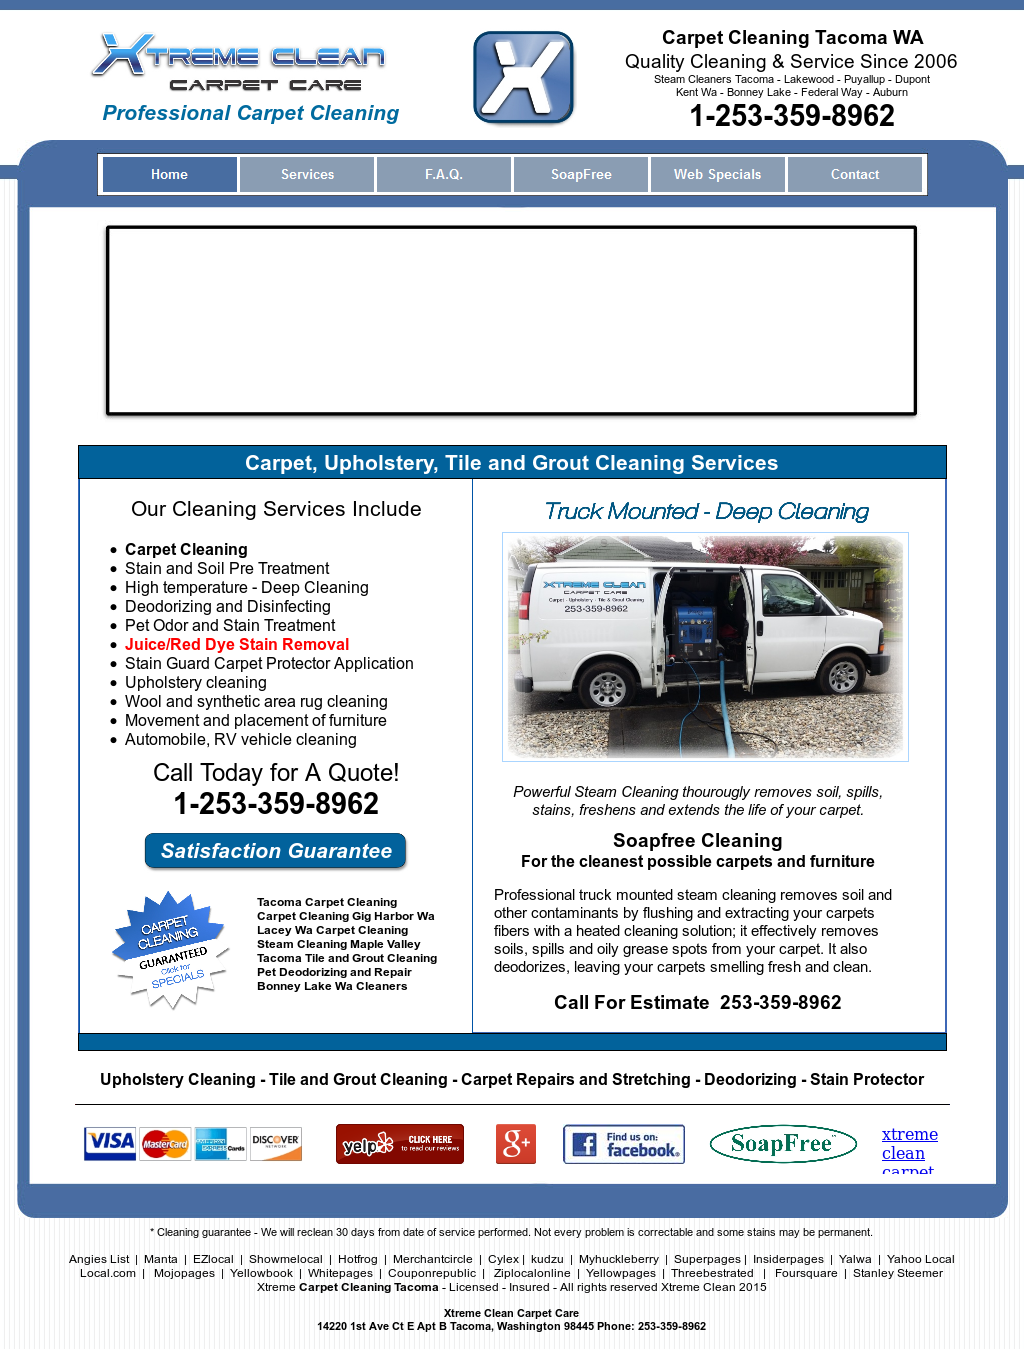 Xtreme Clean Carpet Care Competitors, Revenue and Employees